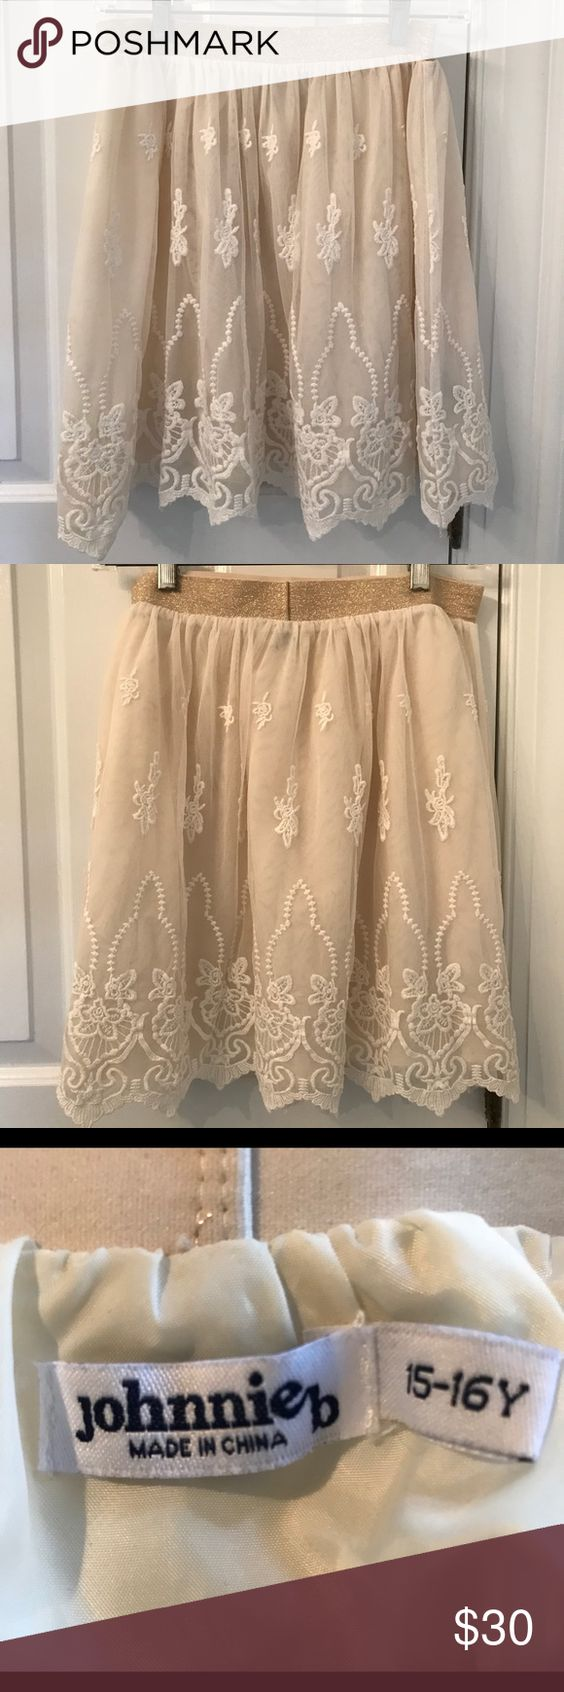 Johnnie B embroidered skirt size 15-16Y Gorgeous embroidered skirt with sparkly gold elasticized waist. Johnnie B size 15-16Y. Perfect for dances and holiday photos! Please see photos for measurements. Lovingly cared for in a smoke free home. johnnie b Bottoms Skirts